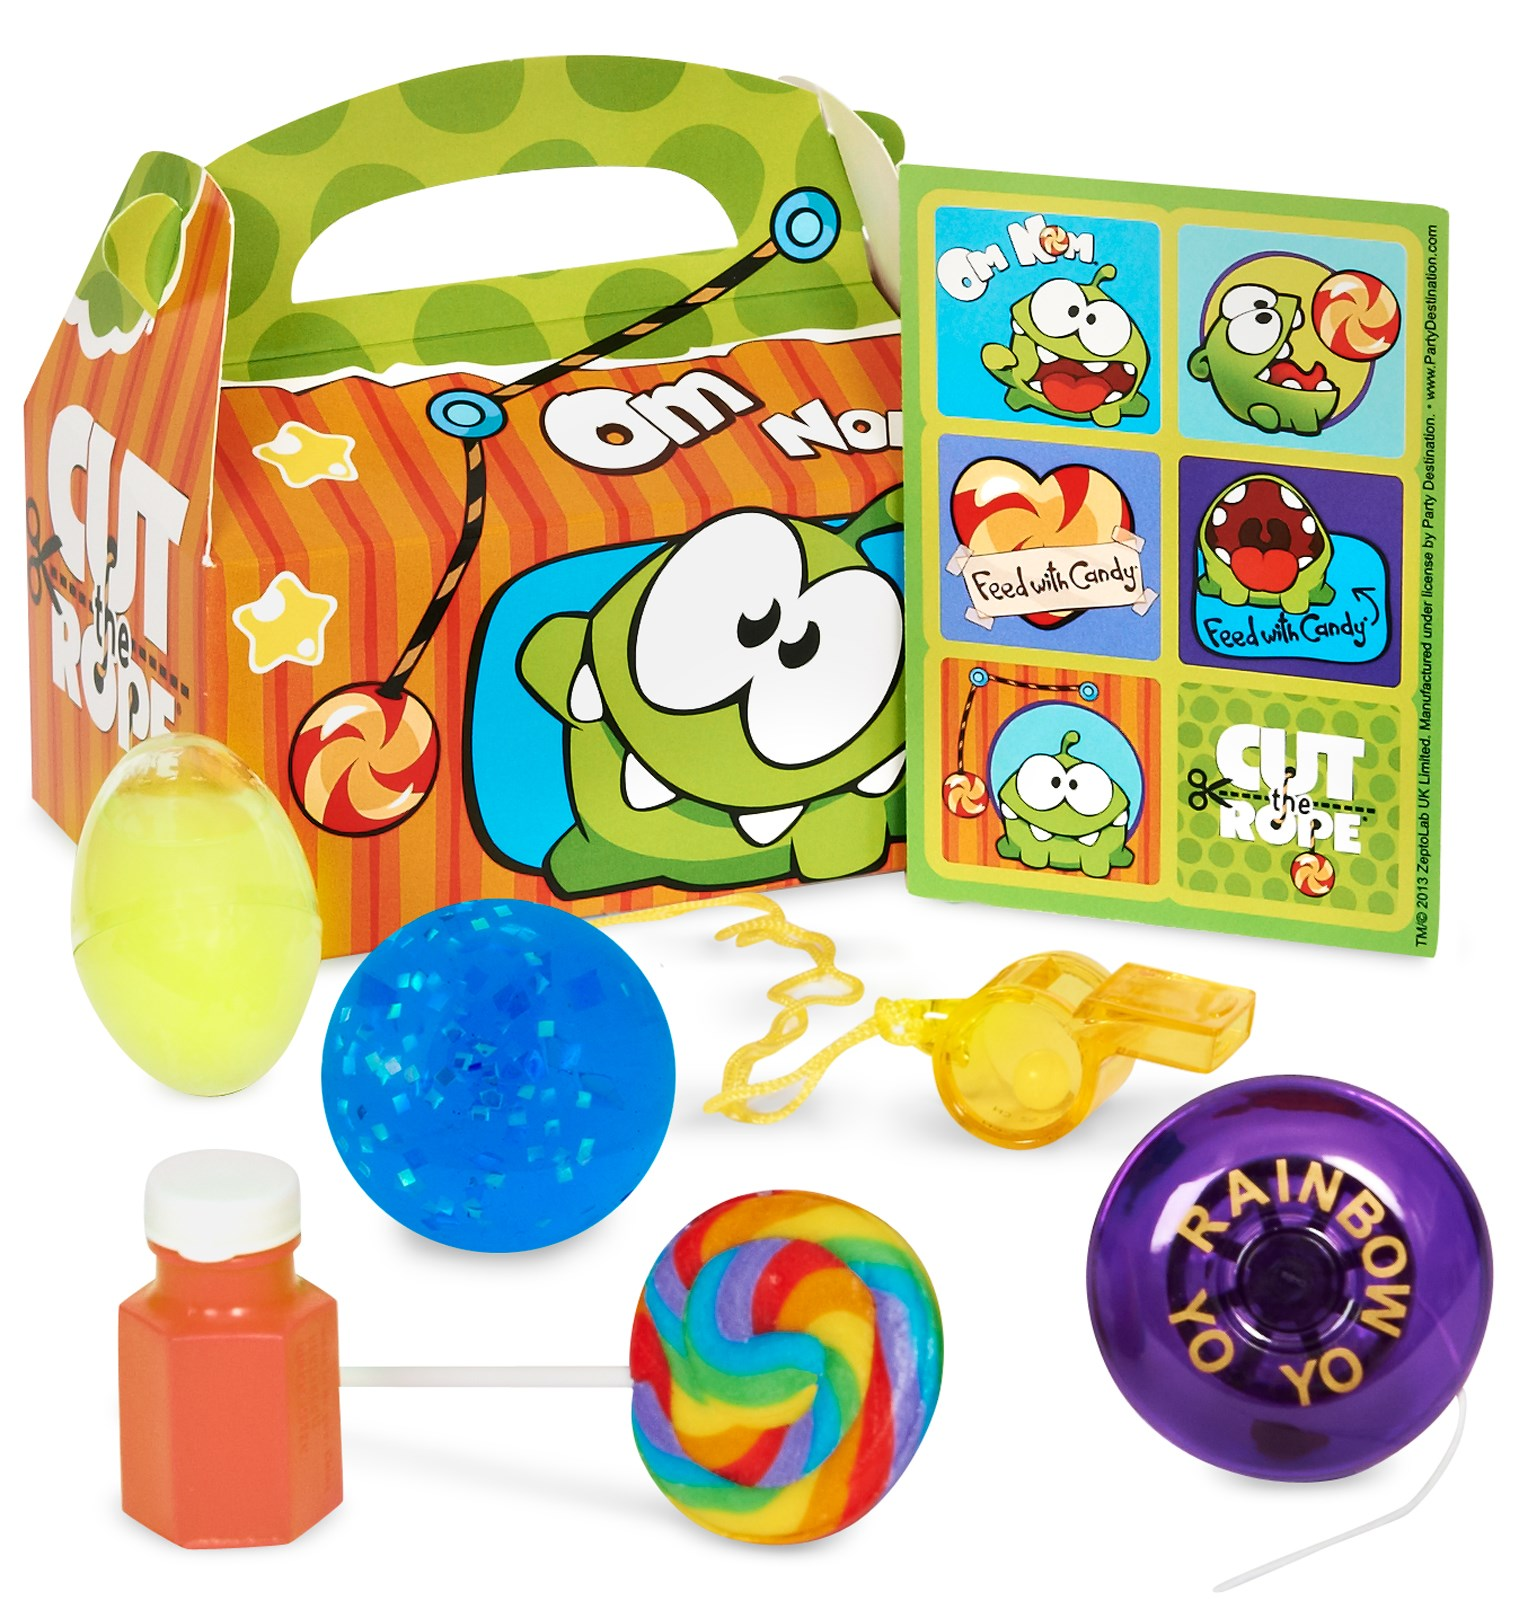 Image of Cut the Rope Party Favor Box